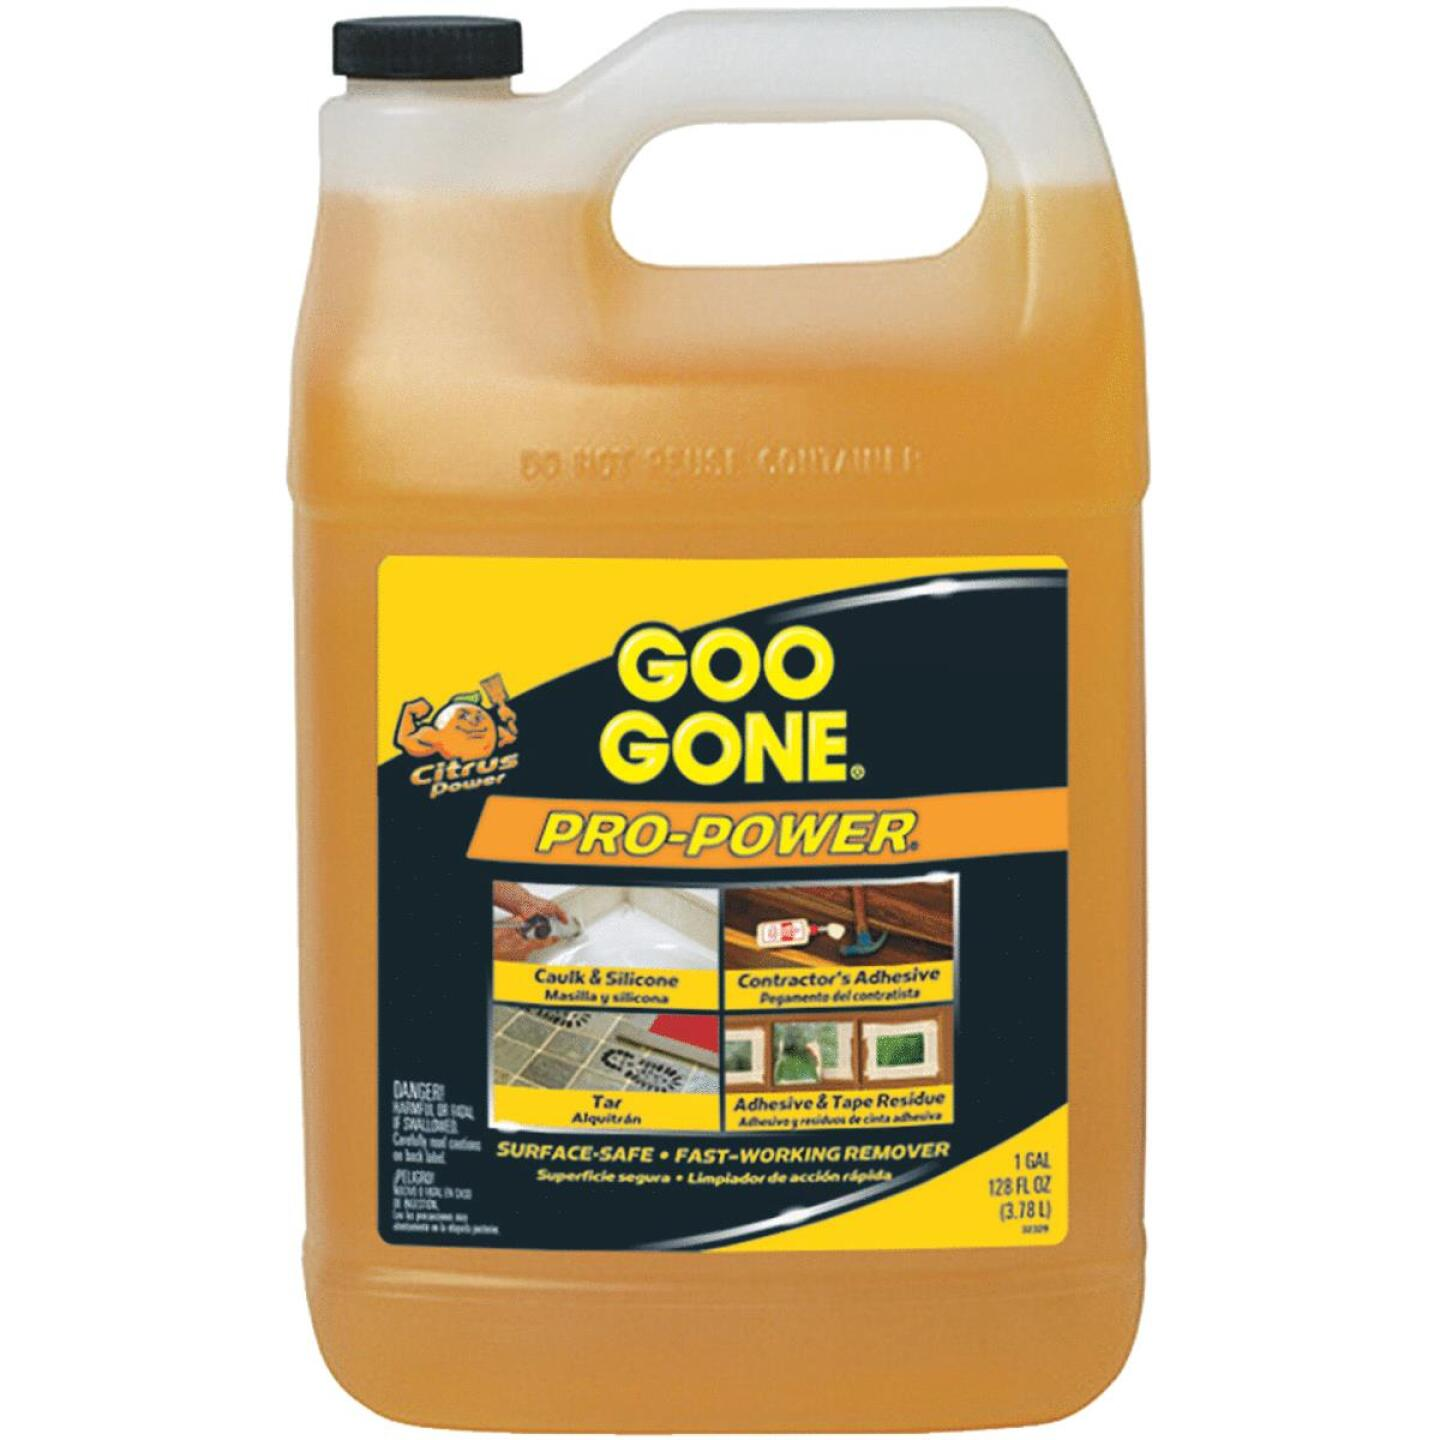 Goo Gone 1 Gal. Pro-Power Adhesive Remover Image 345